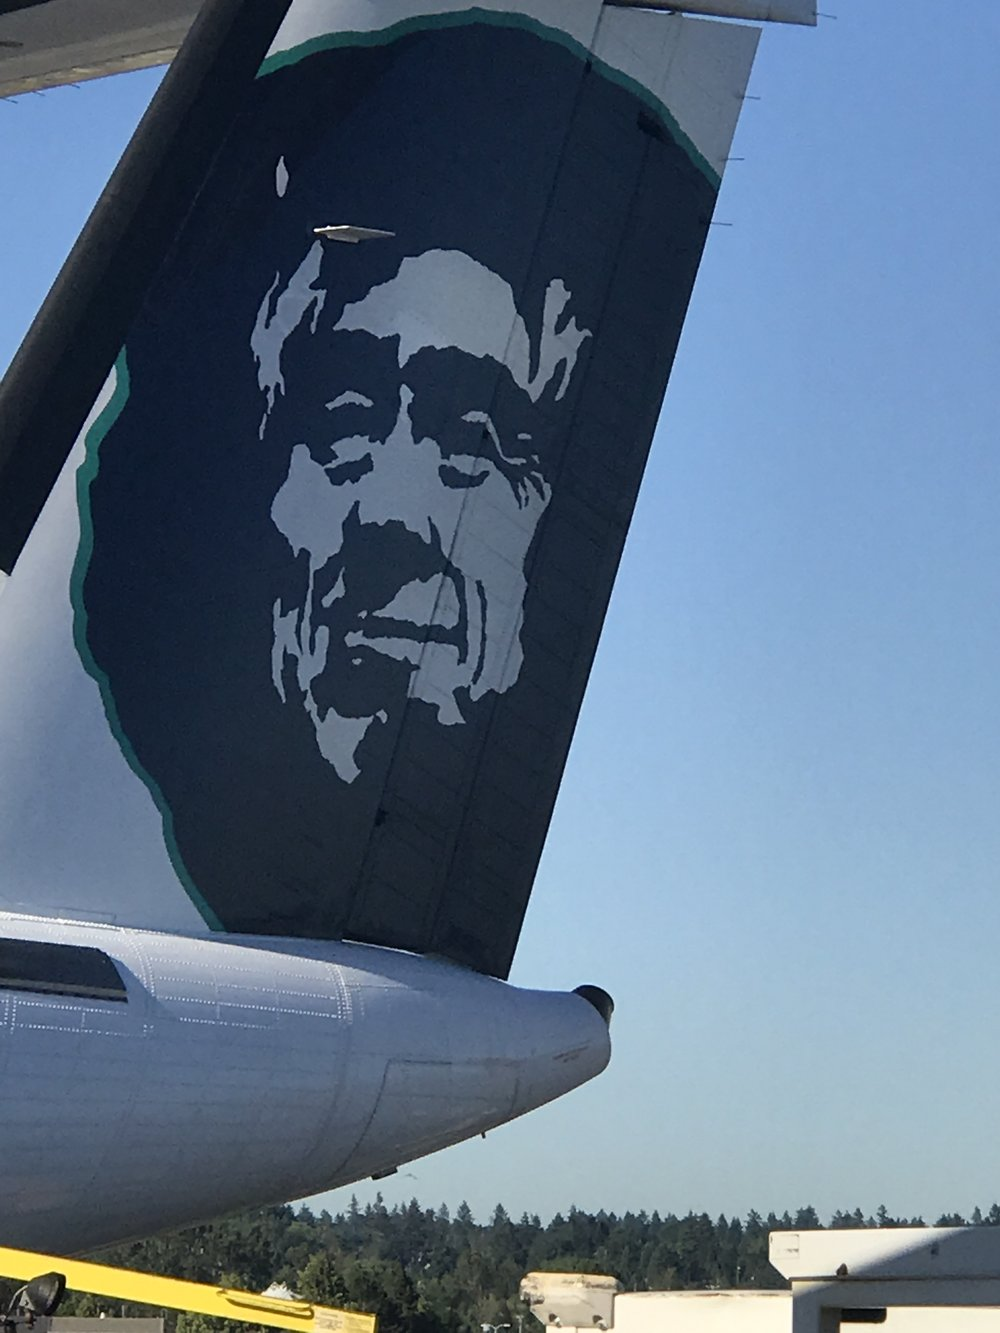 I flew on Alaska Airlines. That guy is their logo. Who do you think looks like him?